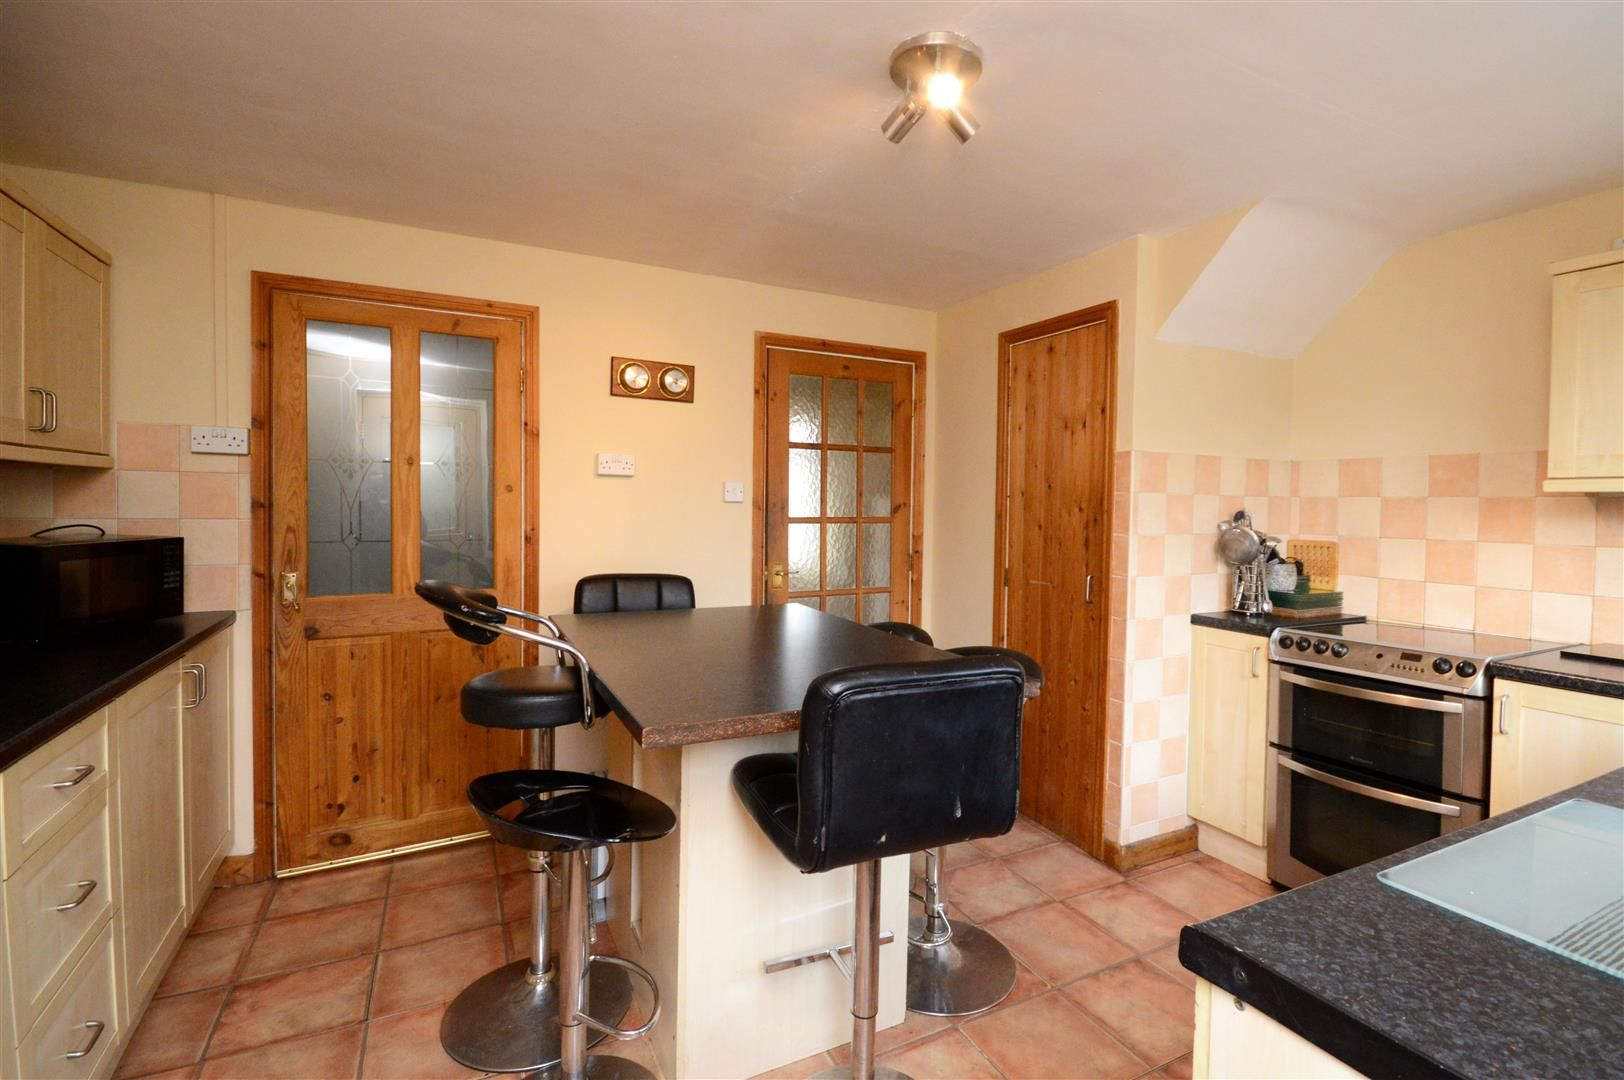 3 bed terraced for sale in Weobley  - Property Image 3